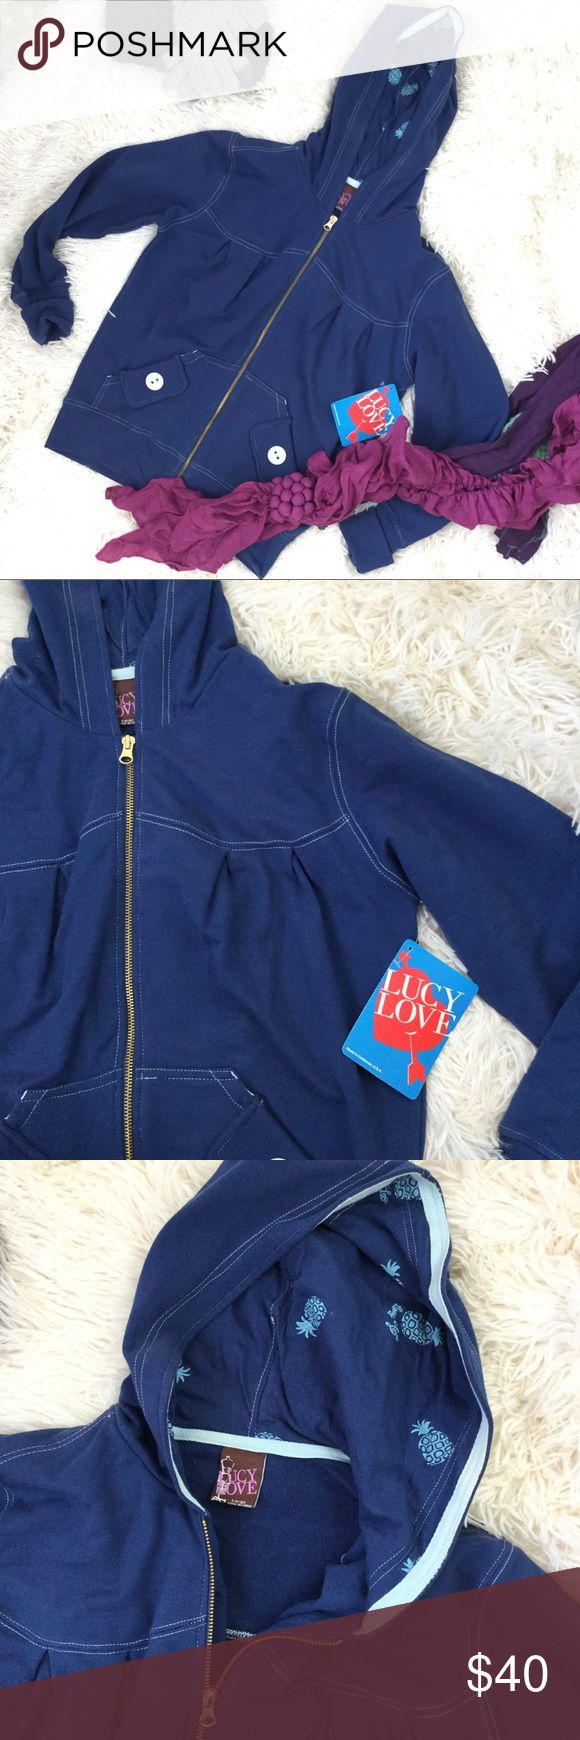 "Pacsun Navy Zip Up Hoodie Lucy Love Hoodie✨ *Size L *Cotton/Spandex                                                                                                                           *Measurements laid flat: bust 22""/length 25""                                                                       *NWT *Save On bundles! PacSun Tops Sweatshirts & Hoodies"